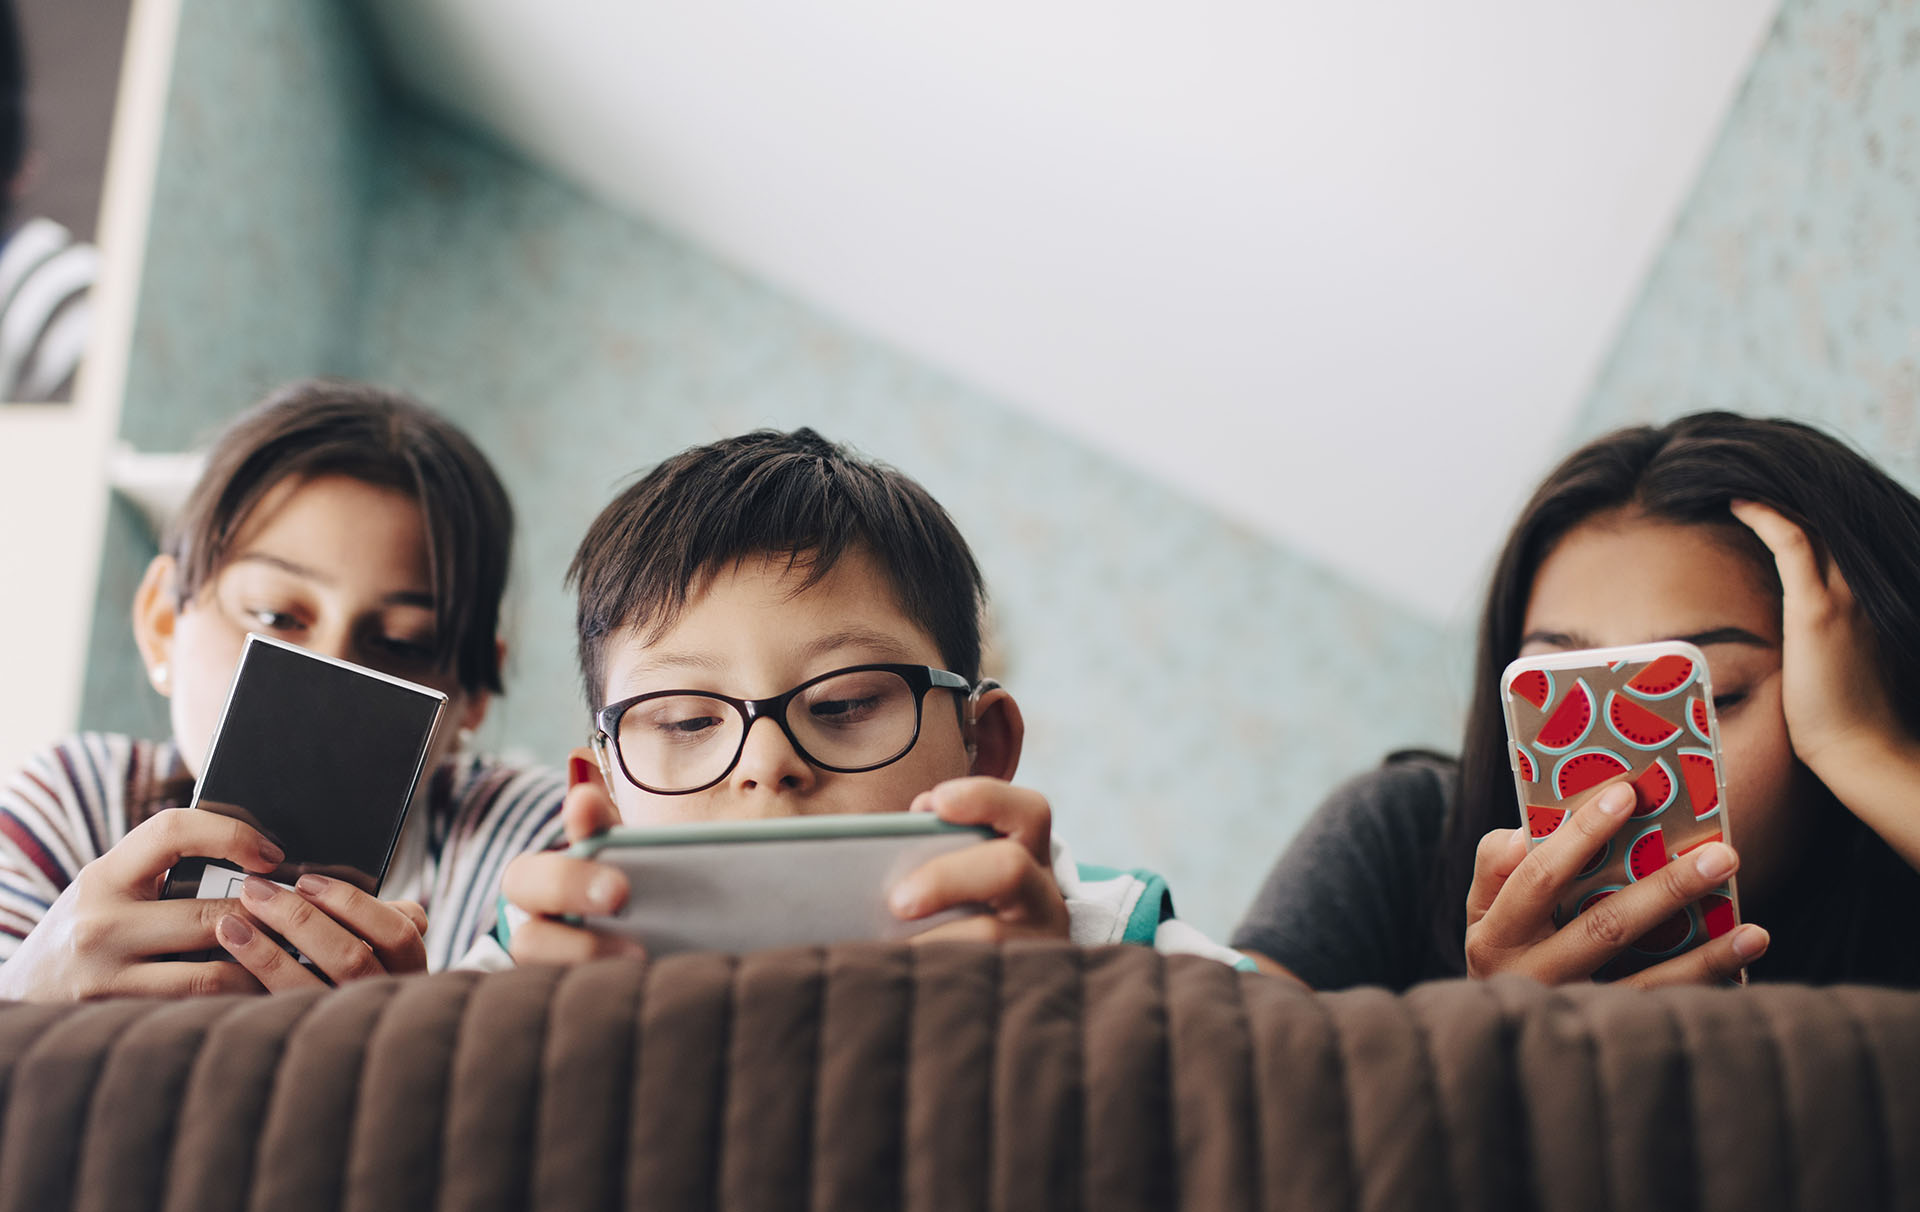 screen time leads to depression